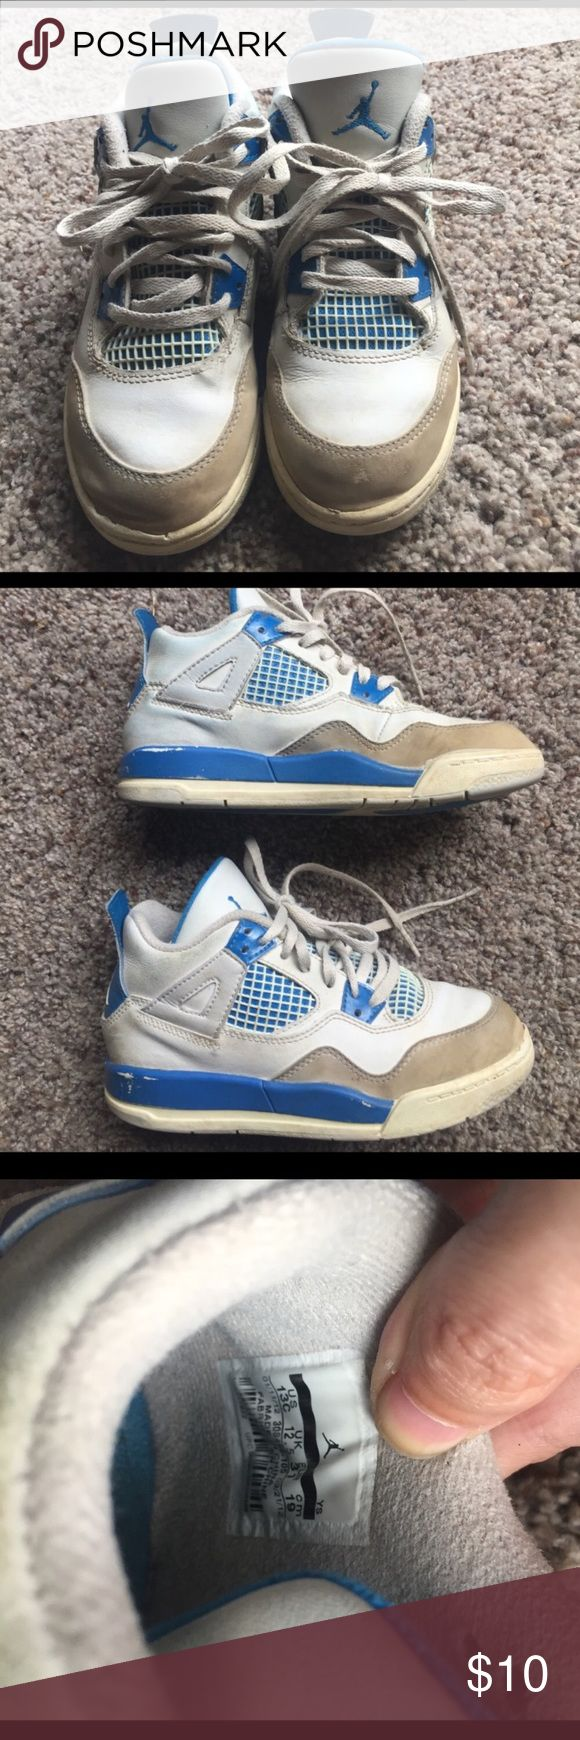 Boys blue and white Jordan's Blue and white boy's Jordan's size youth 13C. Good condition with minor wear and some blue jean transfer. Jordan Shoes Sneakers